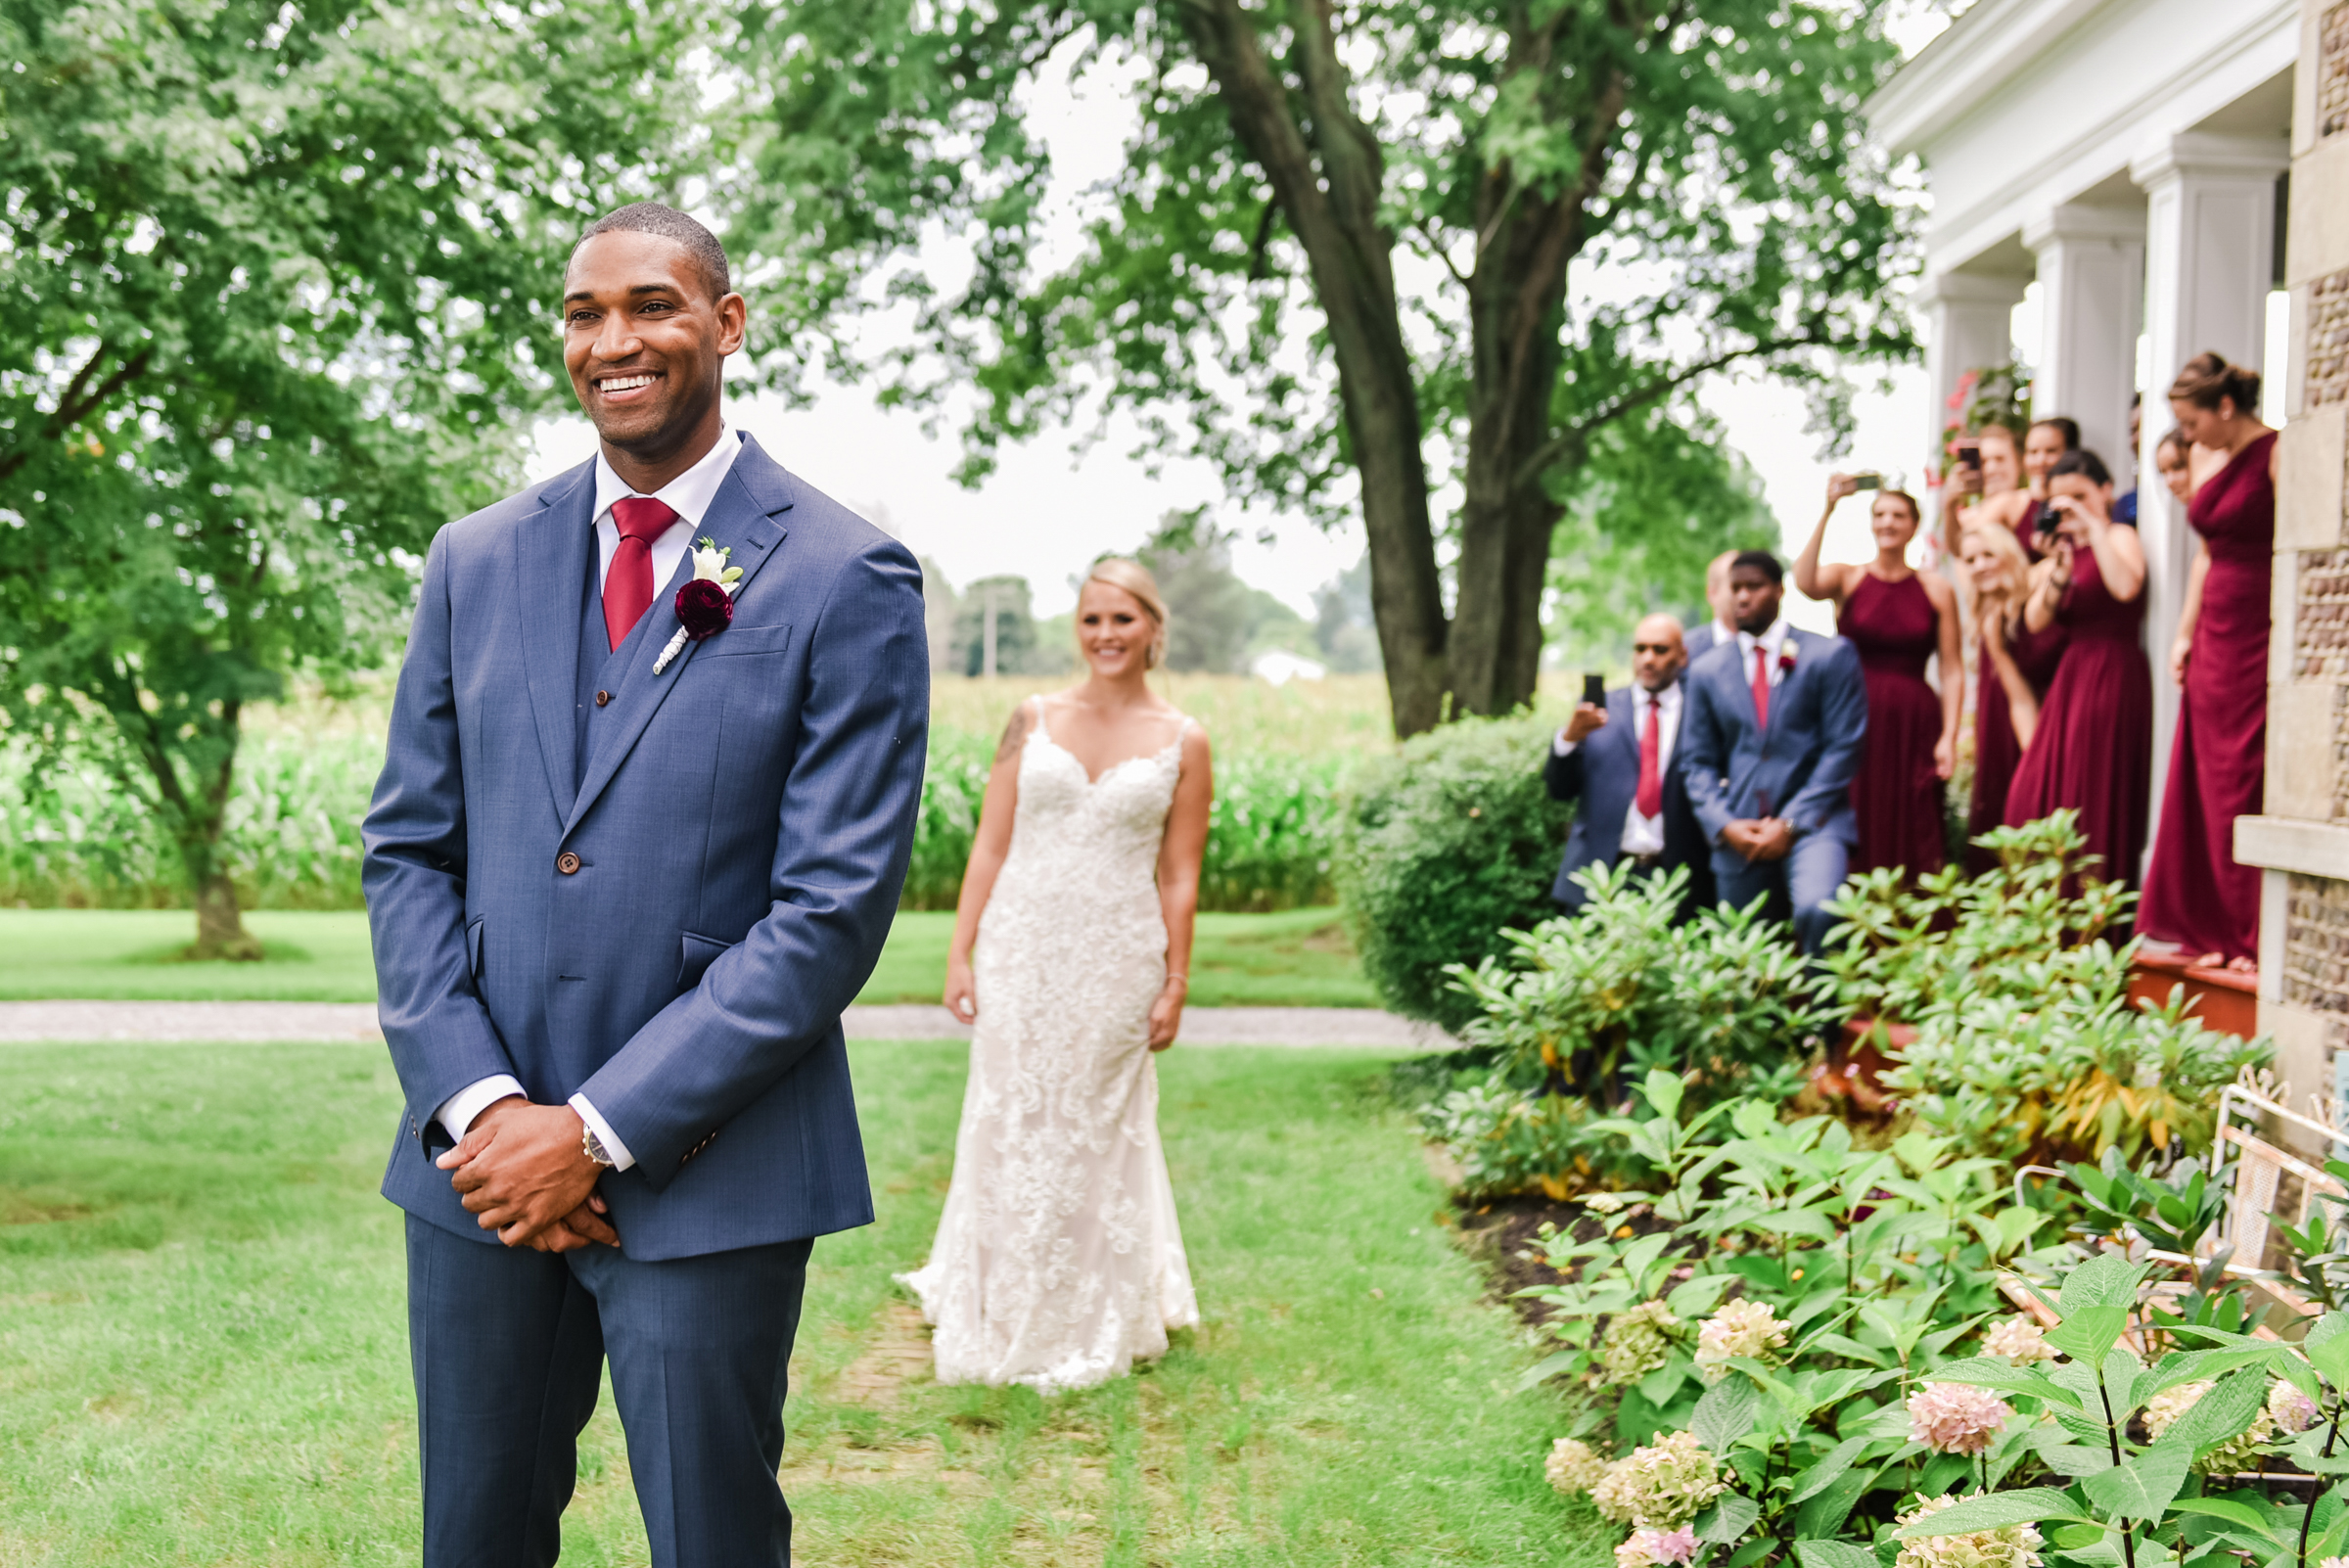 JILL_STUDIO_Wedding_JILL_STUDIO_Rochester_NY_Photographer_17-DSC_6855.jpg